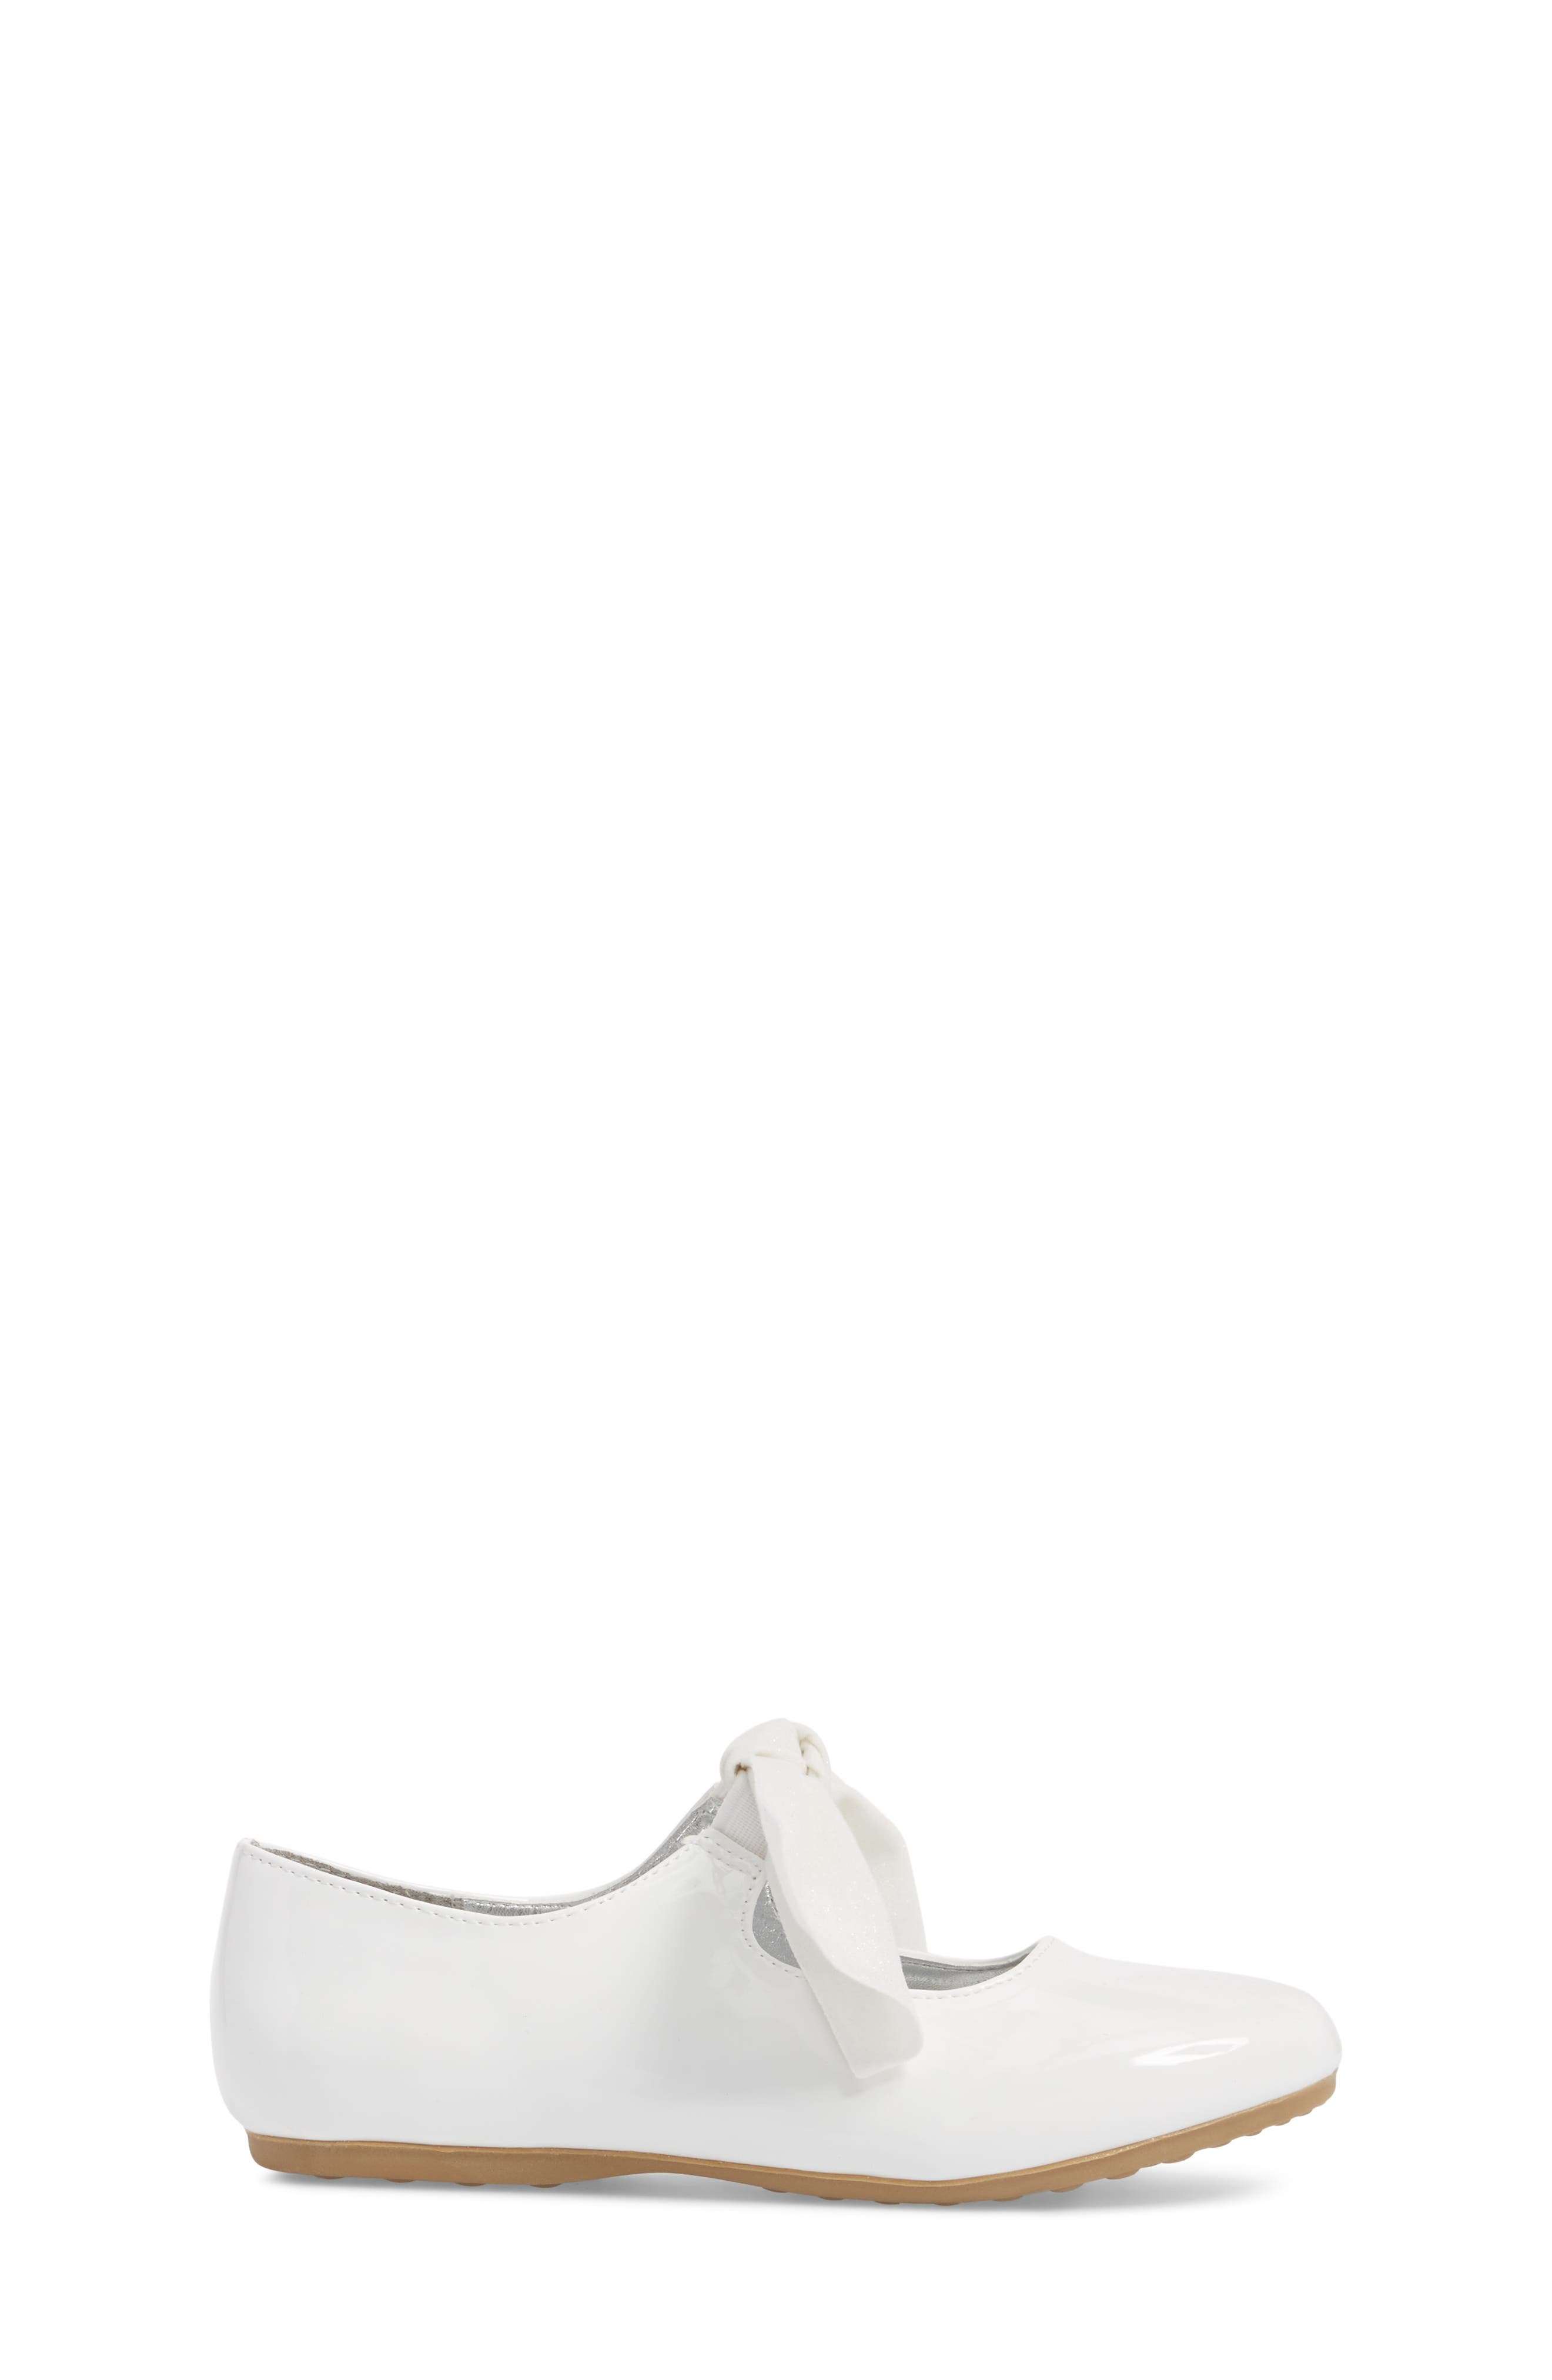 KENNETH COLE NEW YORK, Reaction Kenneth Cole Rose Bow Mary Jane Flat, Alternate thumbnail 3, color, WHITE PATENT